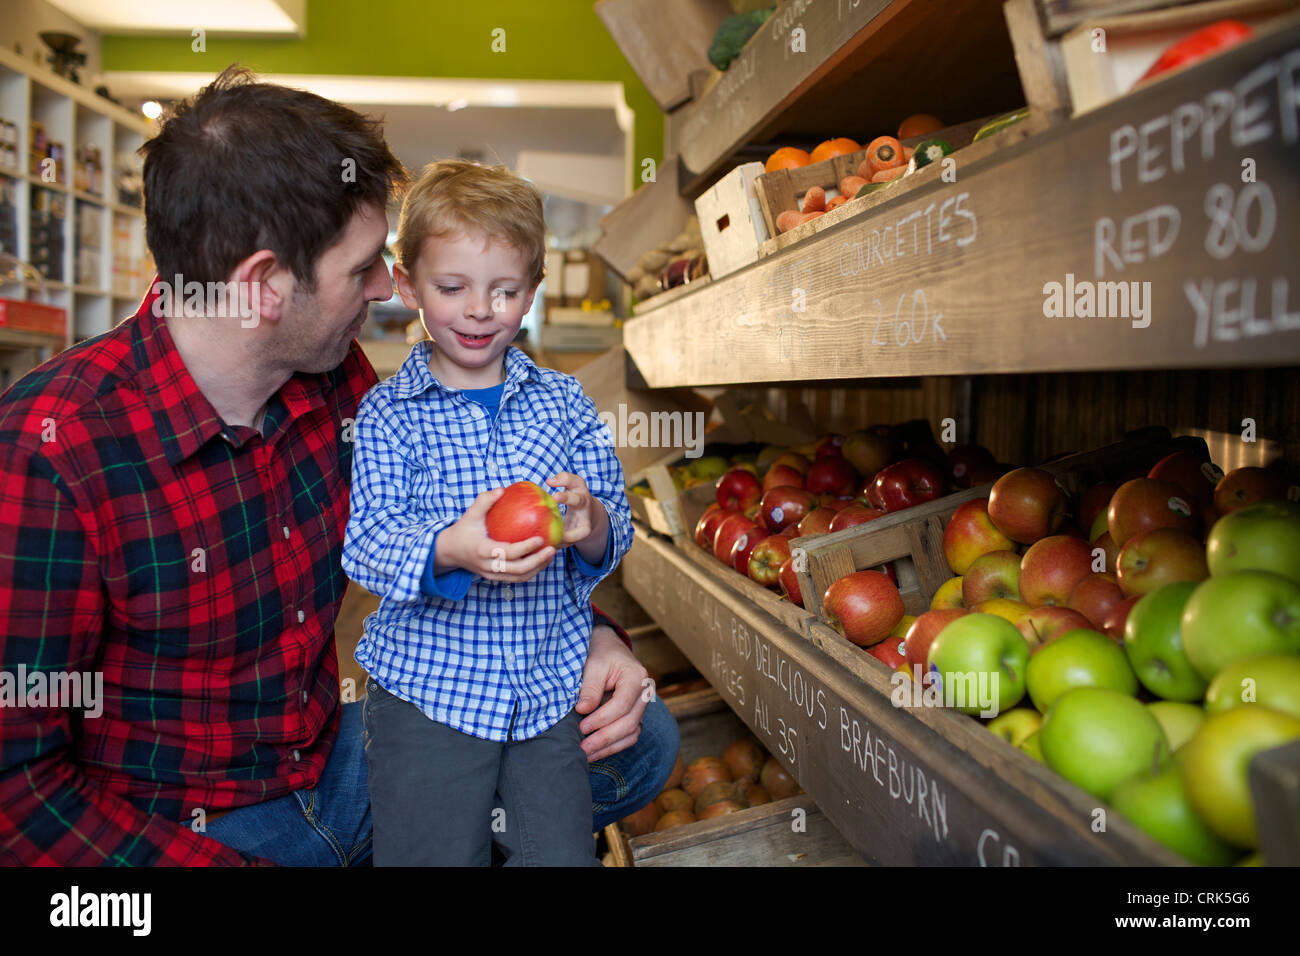 Father and son buying produce in store - Stock Image